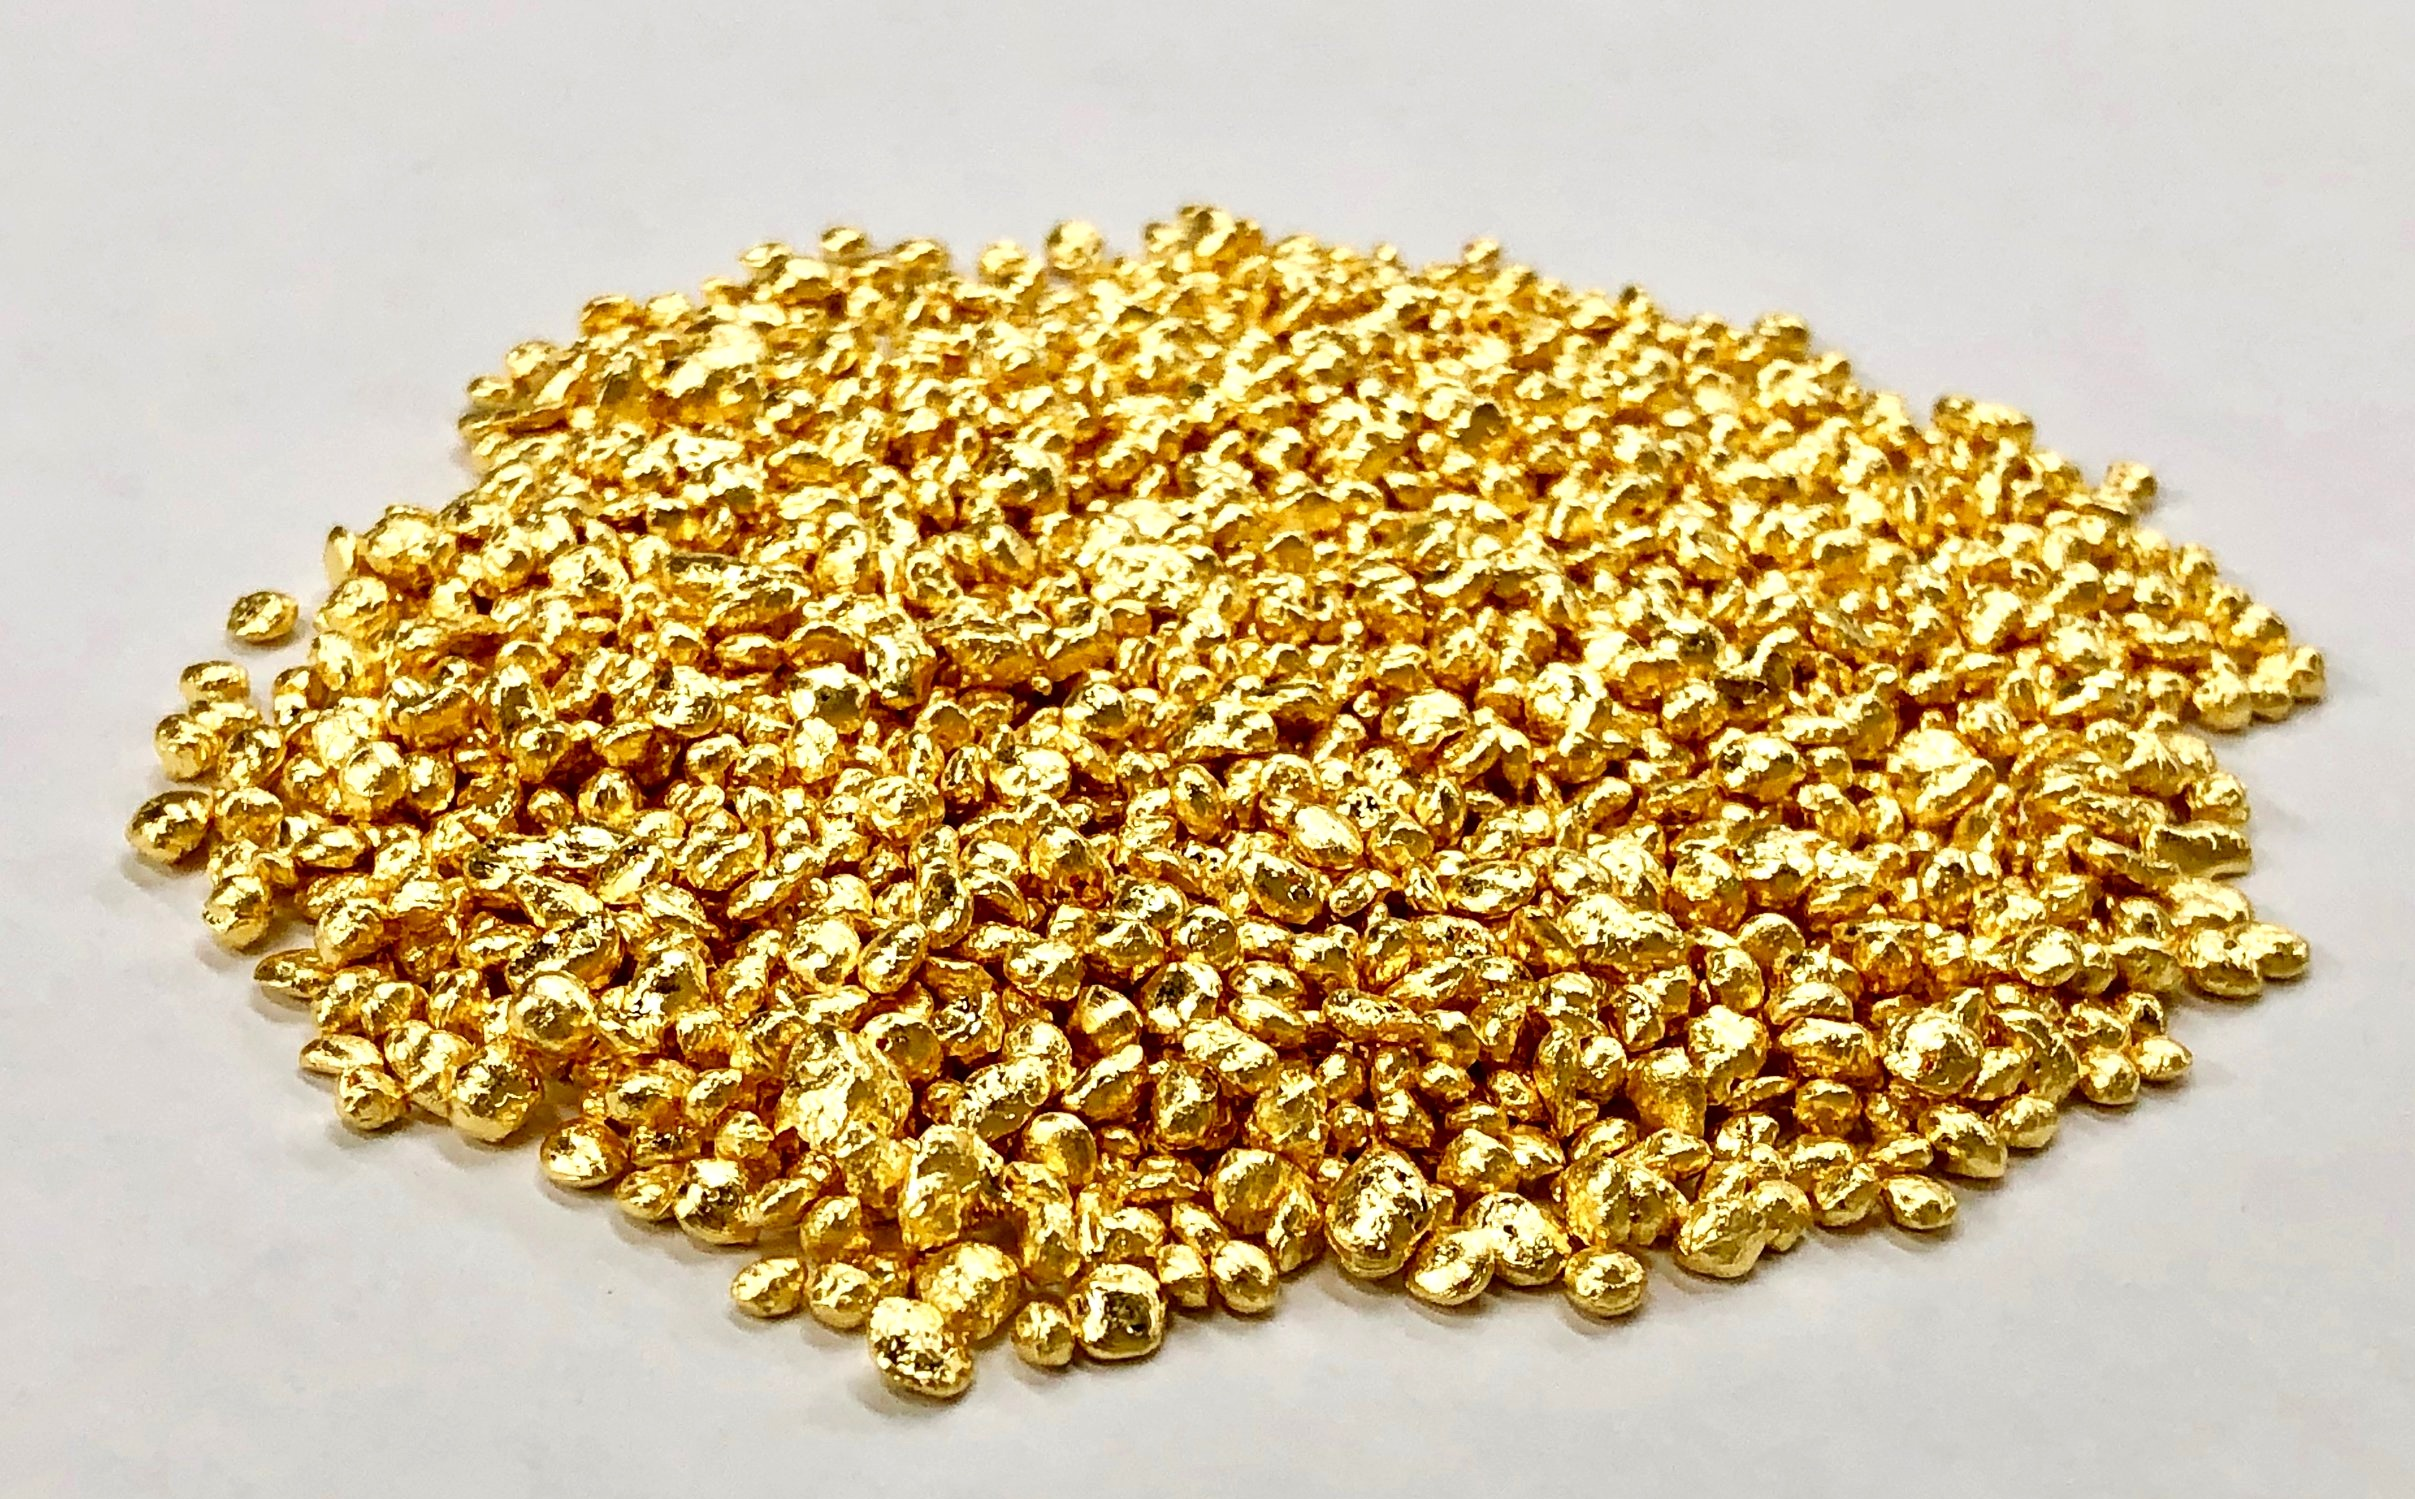 sigmund-cohn-corp-manufactured-metals-home-gold-1